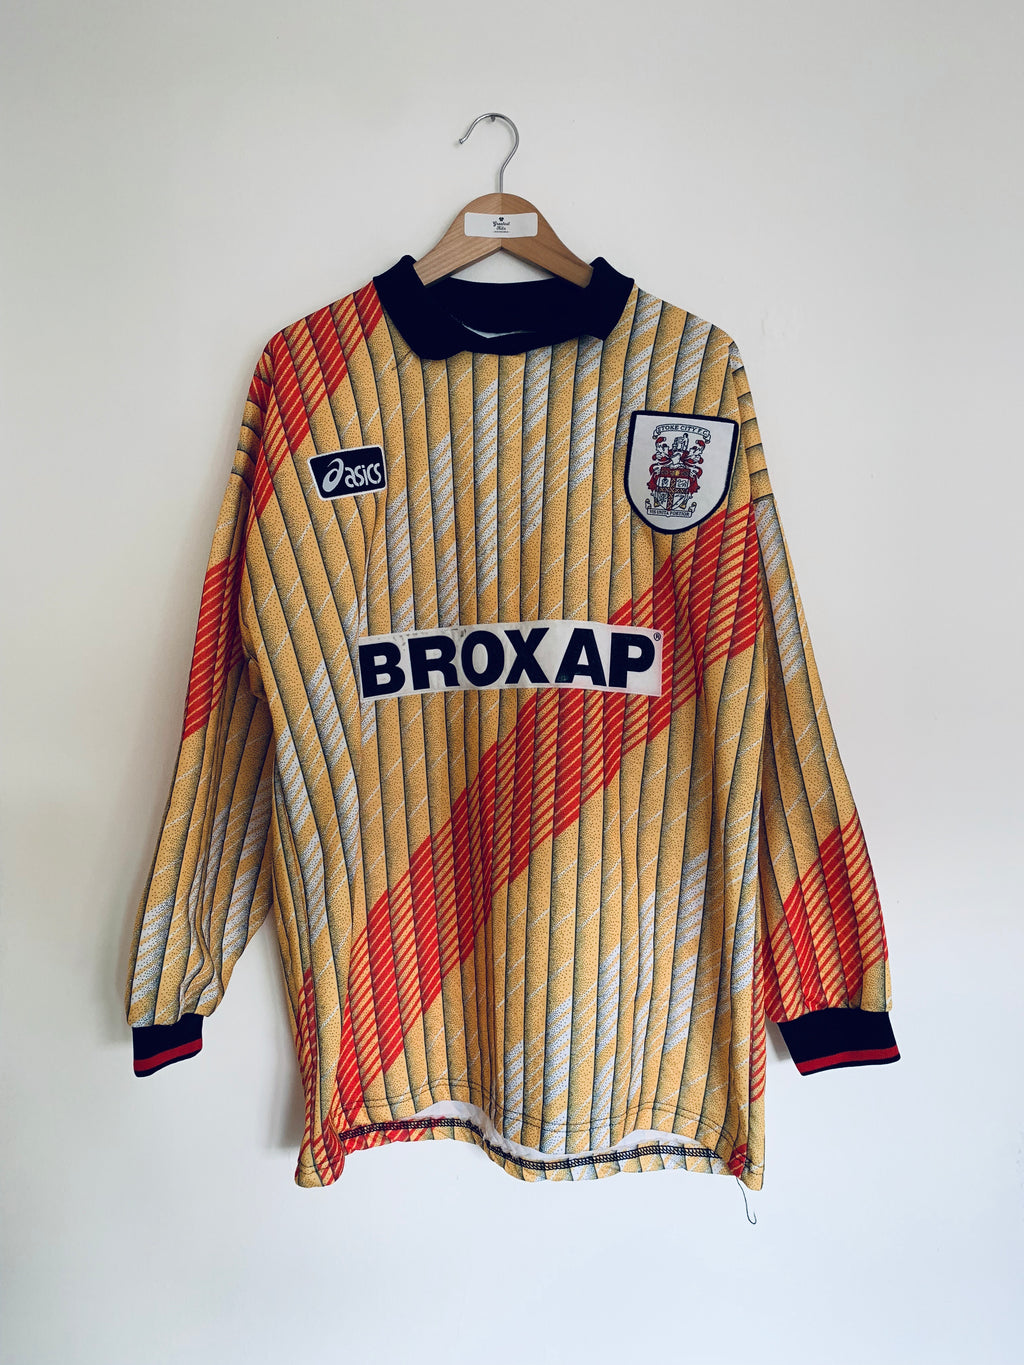 1995/96 Stoke City GK Shirt (XL) 9/10